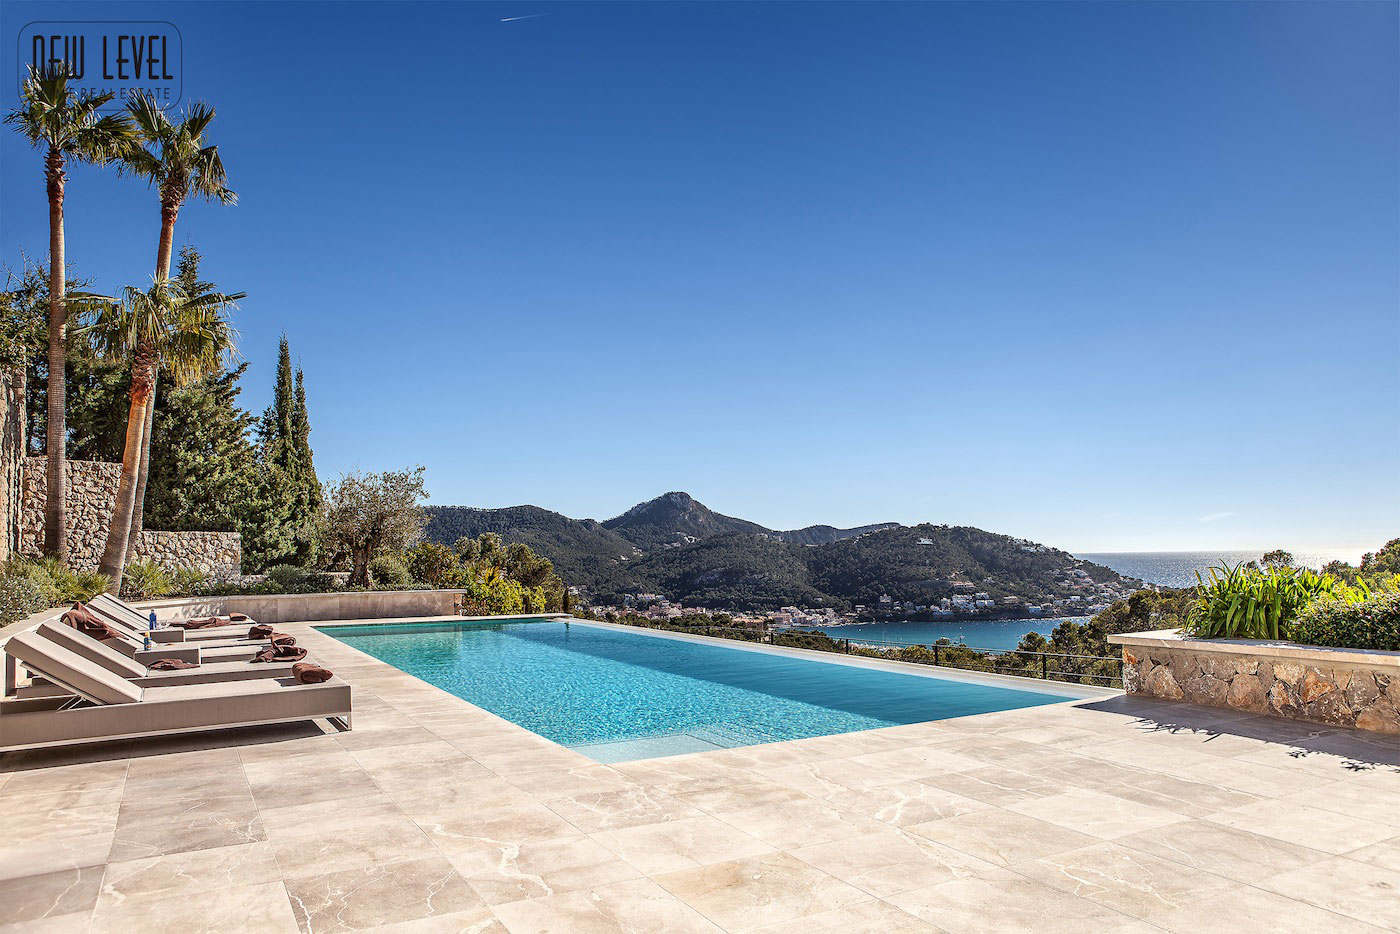 Infinity Pool, Amazing Views, Fabulous Villa in Puerto de Andratx, Mallorca